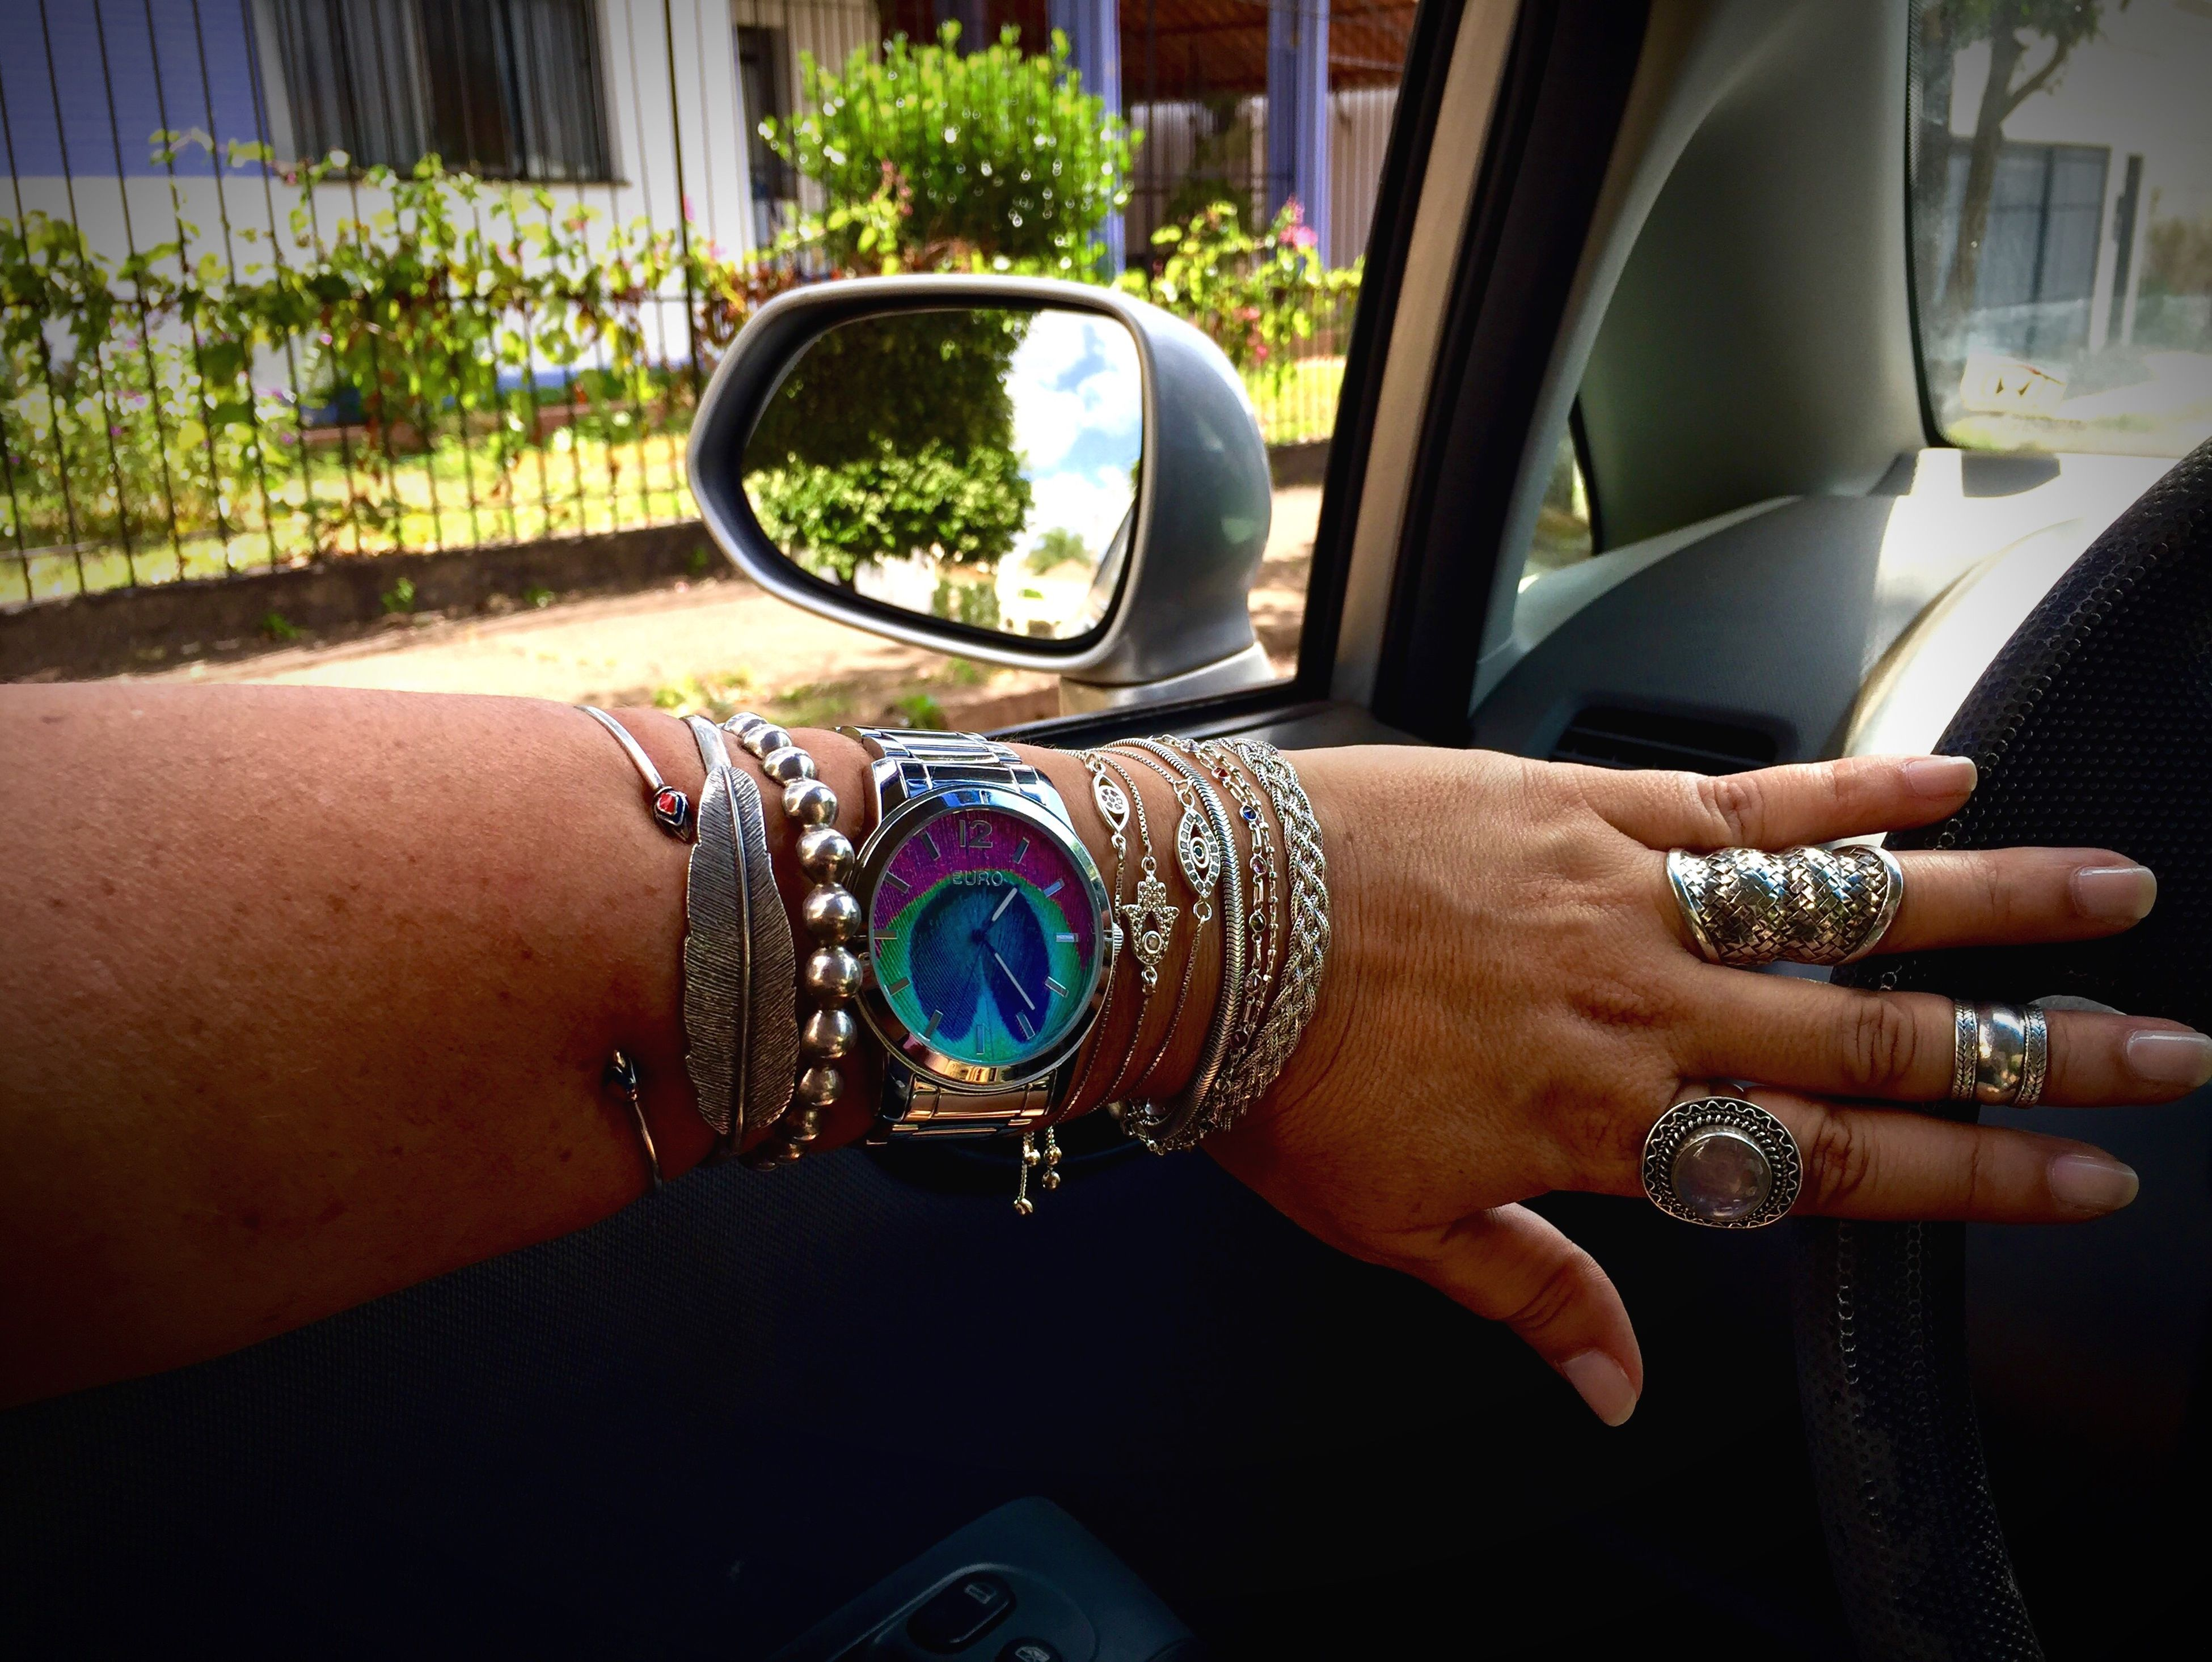 If do I love silver?...🤔😍yes, i love it so much! Human Hand Human Body Part Car Wristwatch One Person Transportation Real People Mode Of Transport Land Vehicle Bracelet Close-up Day Outdoors Adult People Gipsy Style